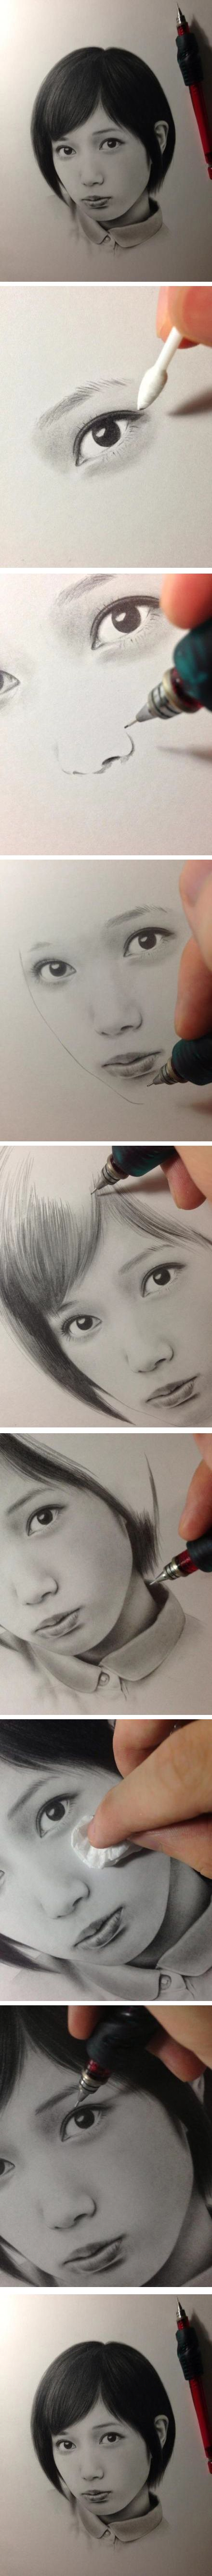 Awesomely realistic drawing